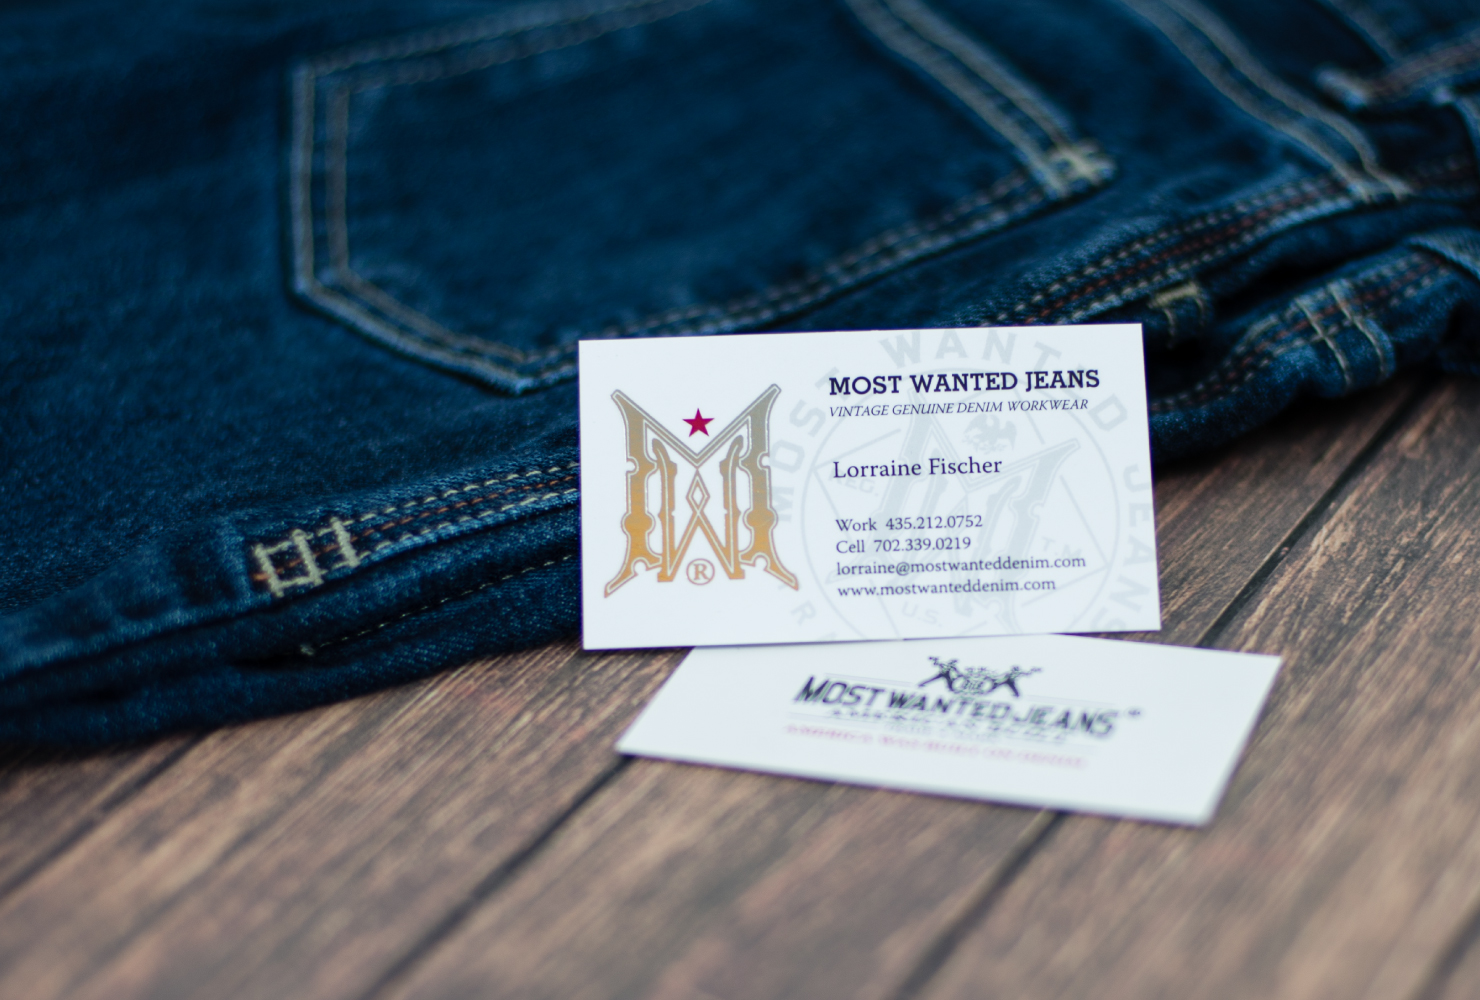 Custom Business Cards designed and Printed to impress your customers